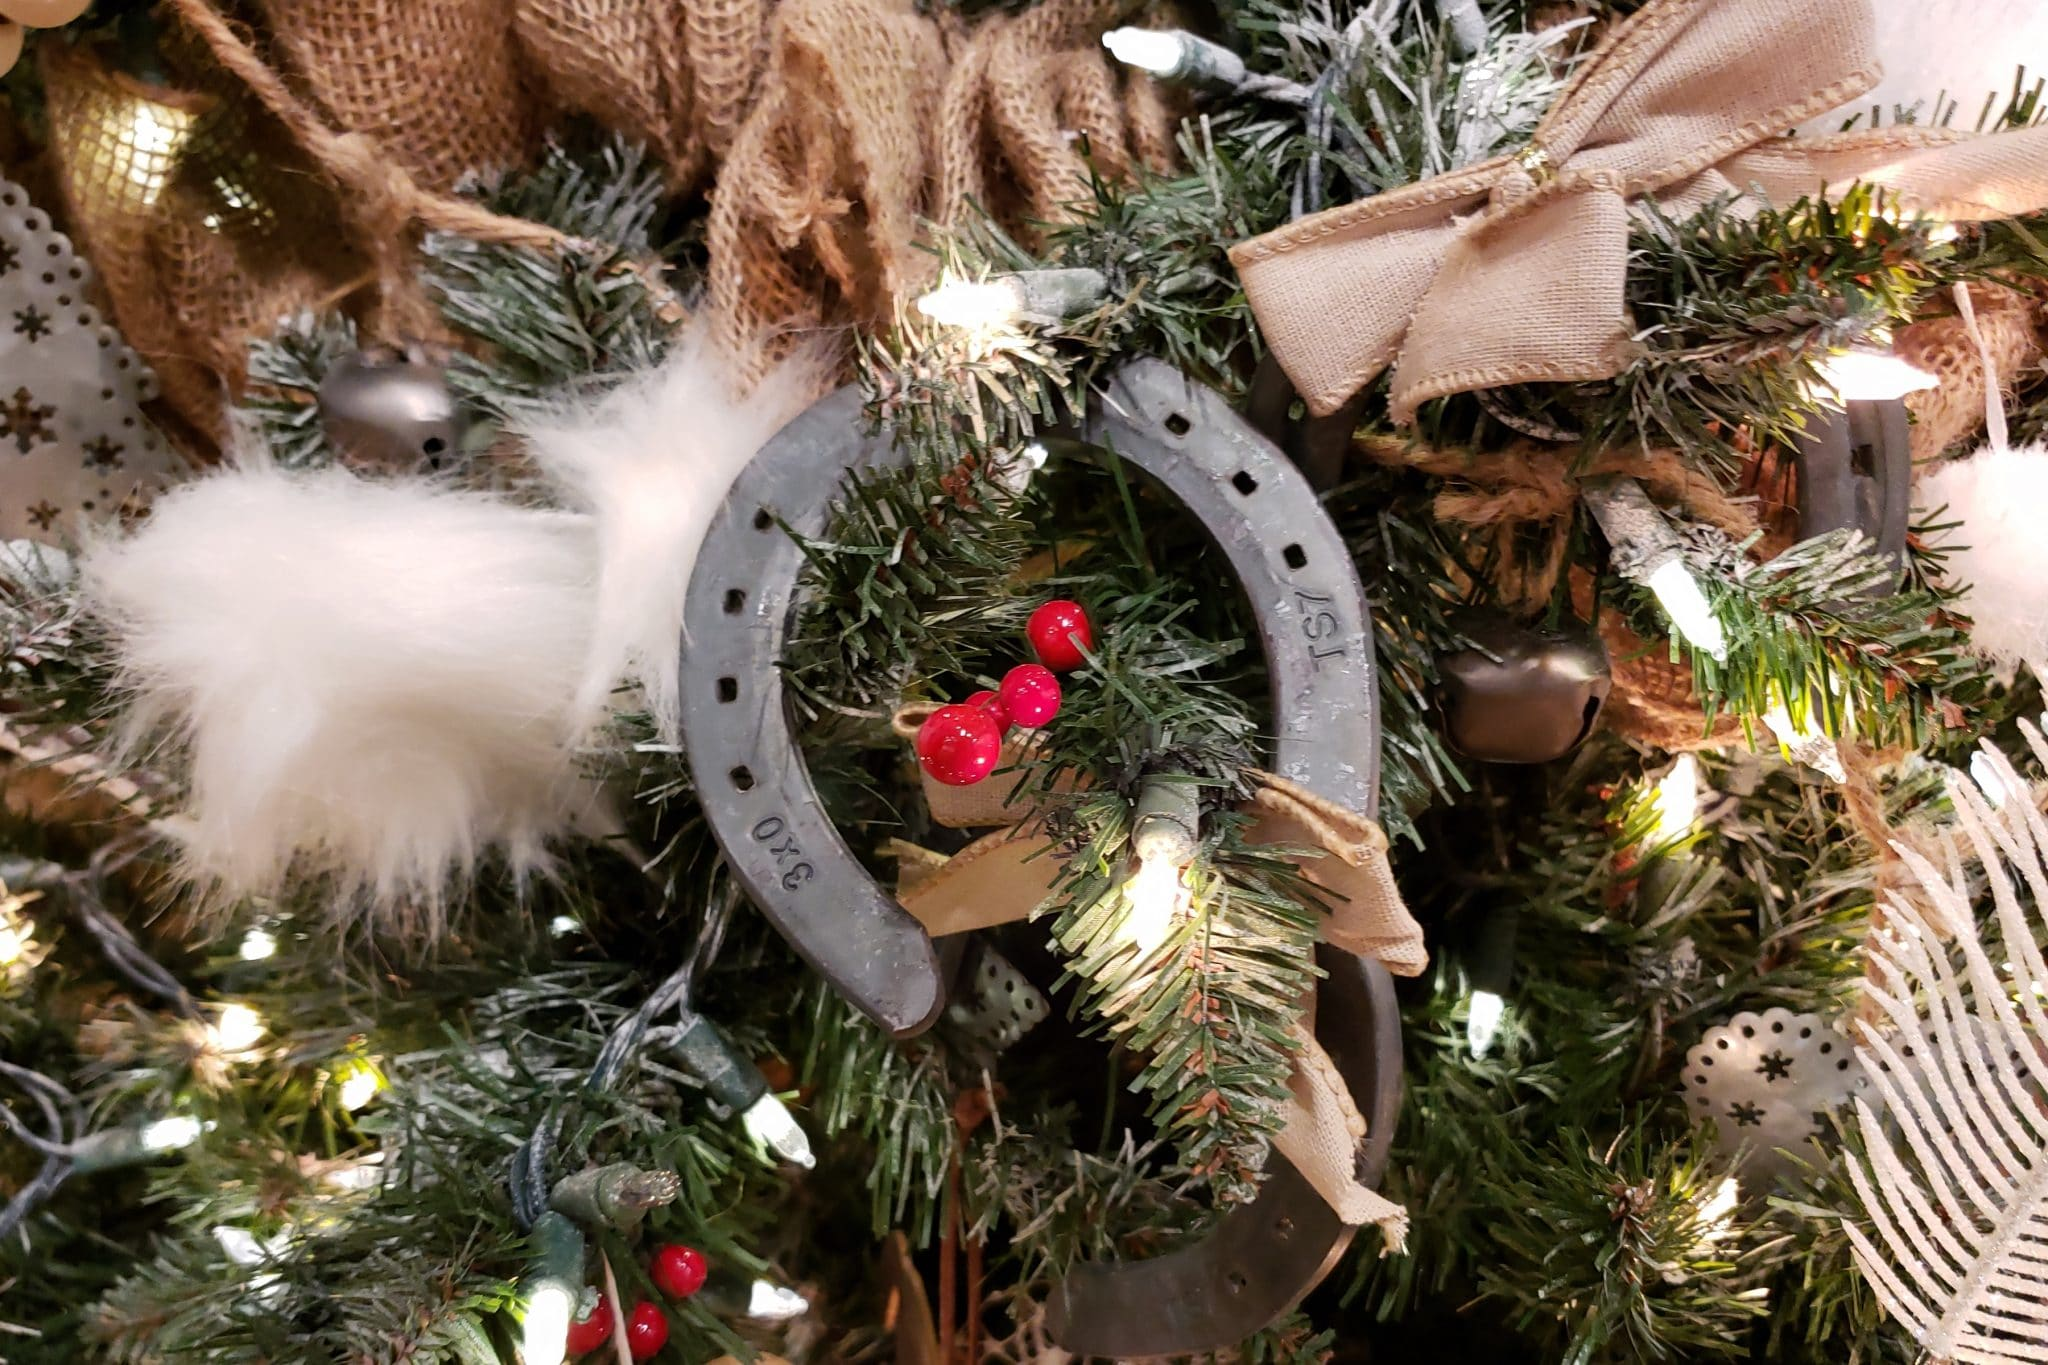 Horseshoe ornament on MHM Professional Staging's Christmas tree for the Orlando Museum of Art Festival of Trees 2019